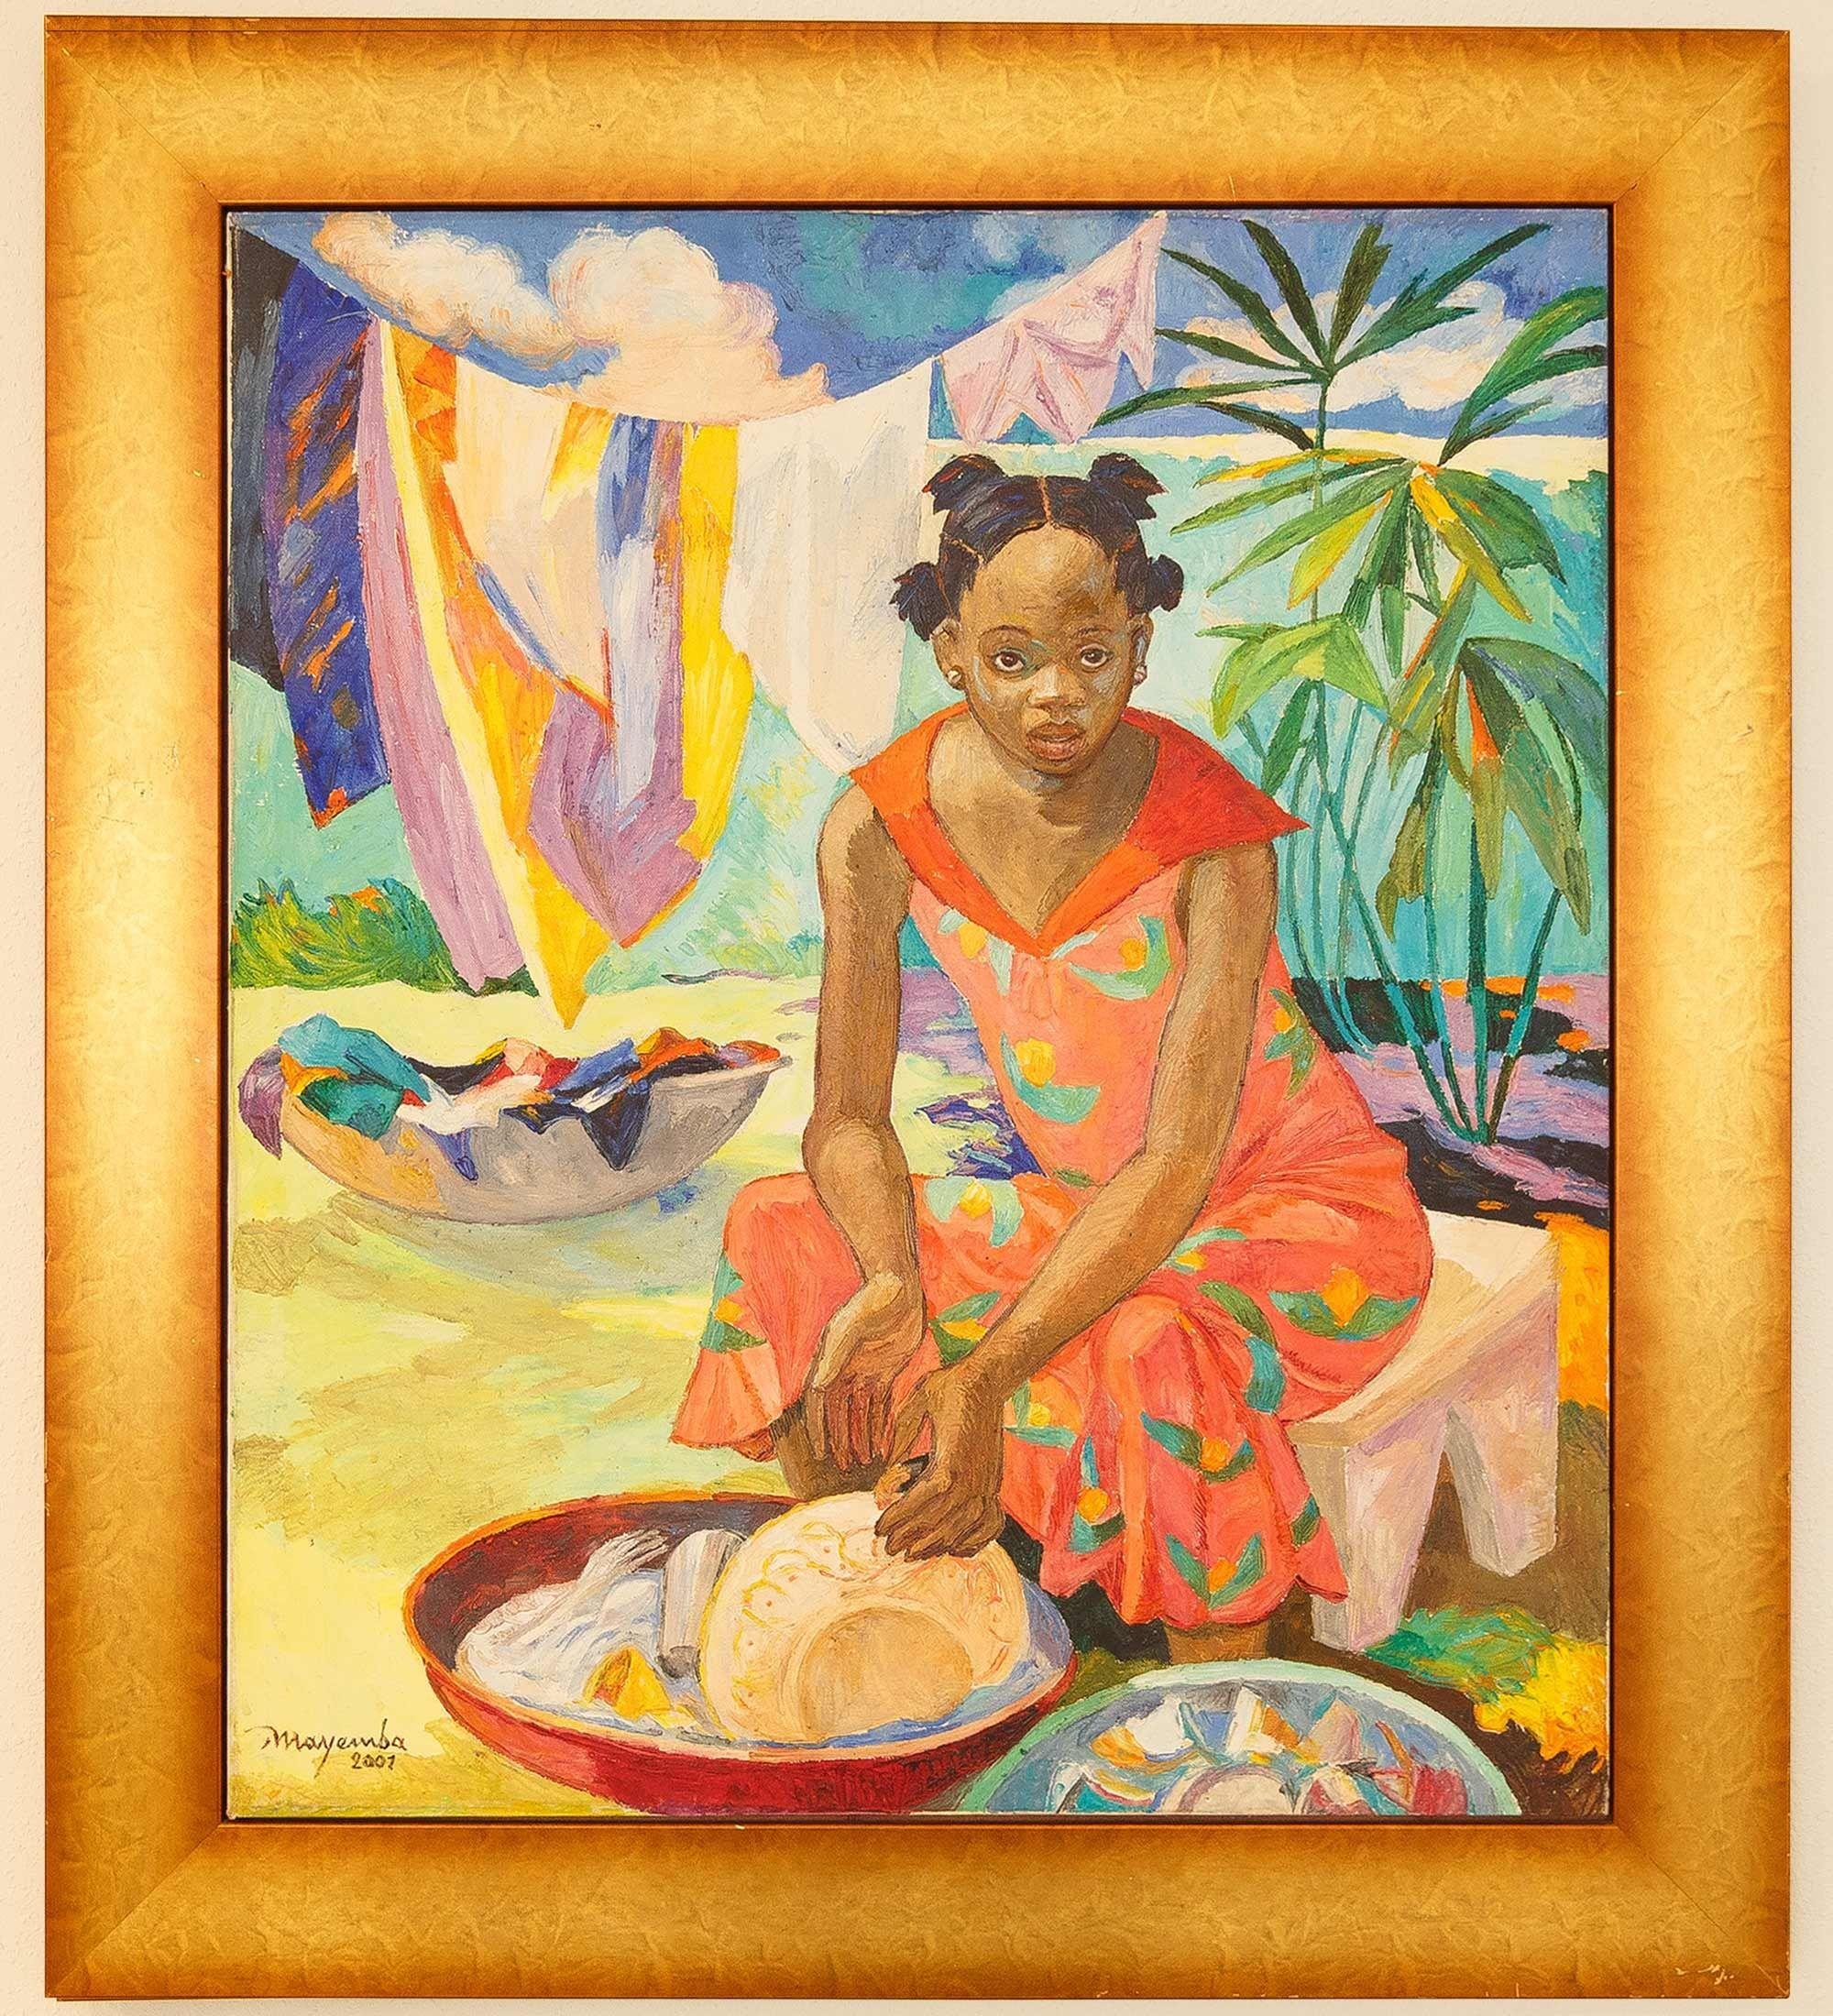 Painting of a woman doing laundry by Congolese artist Mayemba.